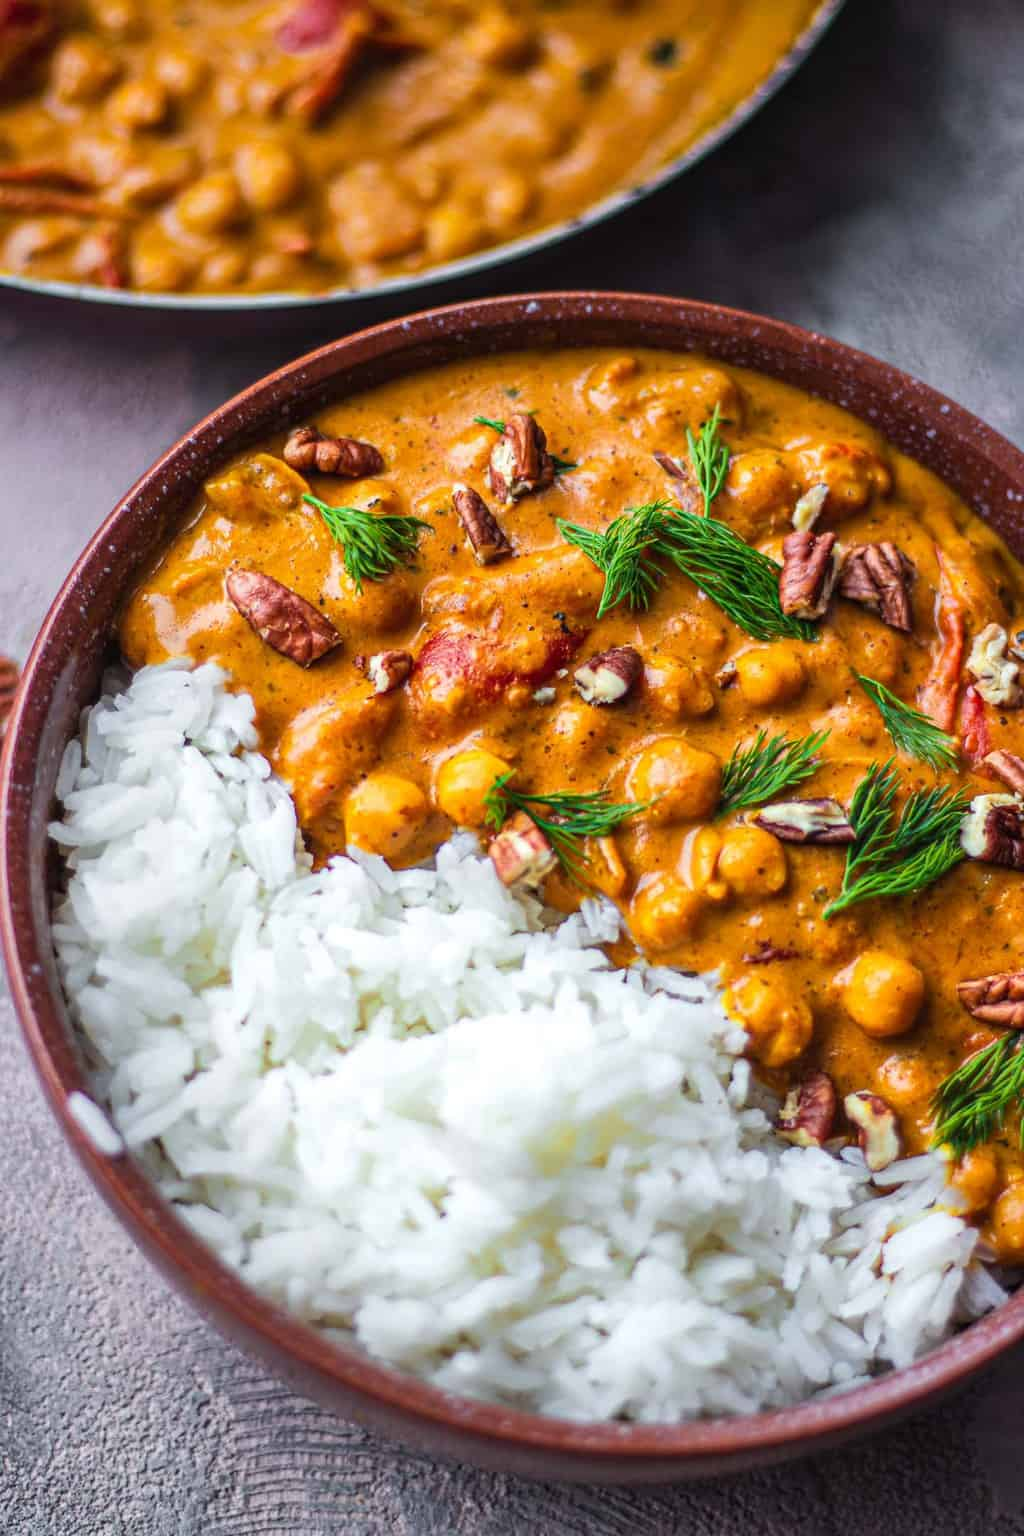 Bowl with vegan chickpeas in a curry sauce and rice